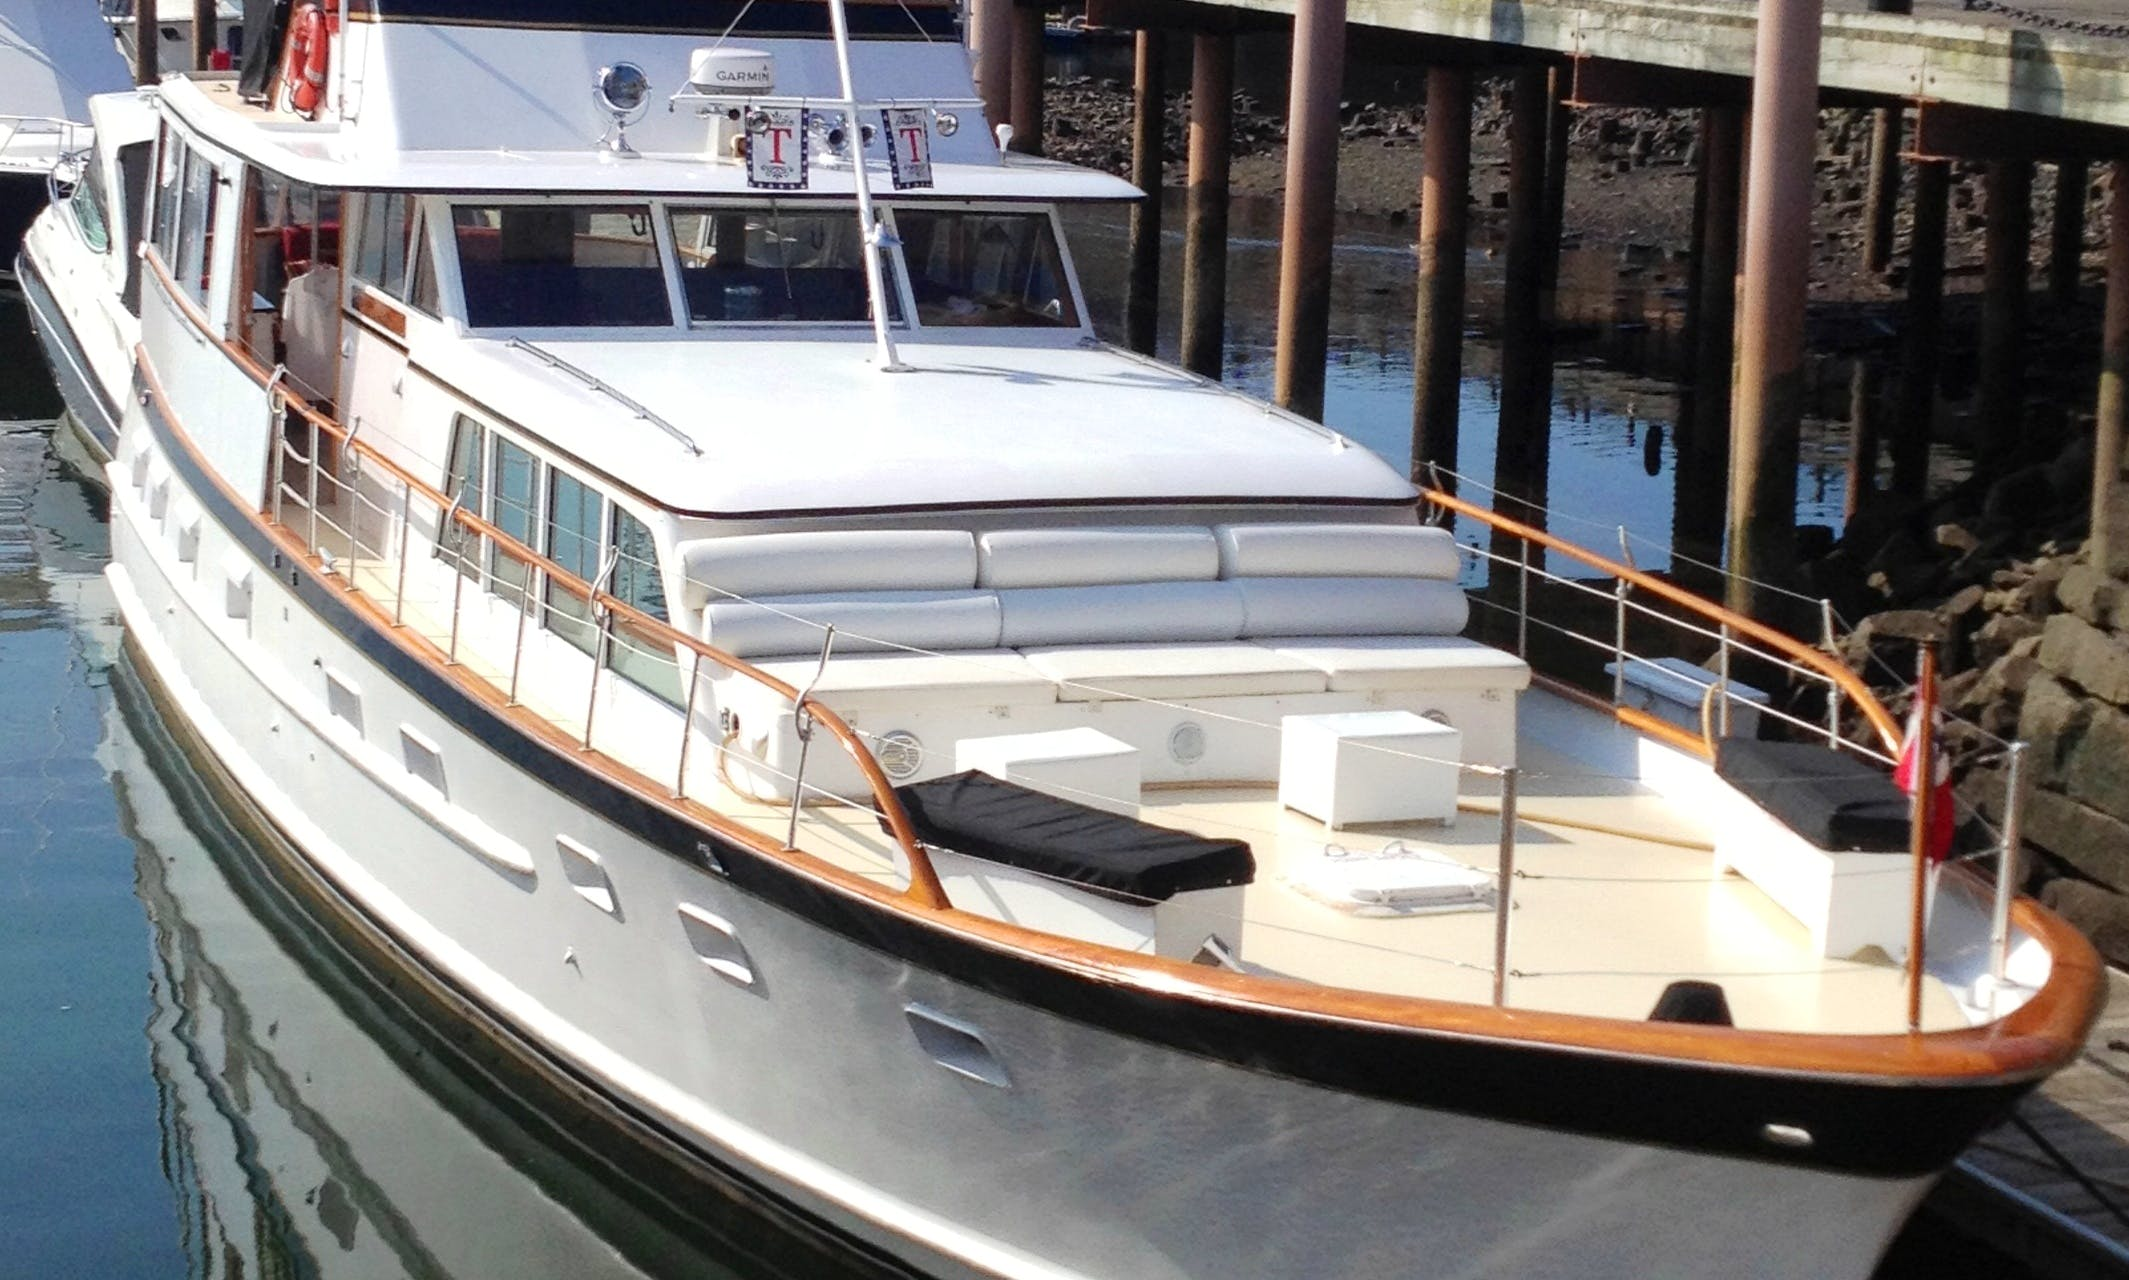 Charter a 64' Classic Berger Motor Yacht in Boston (up to 43 guests)